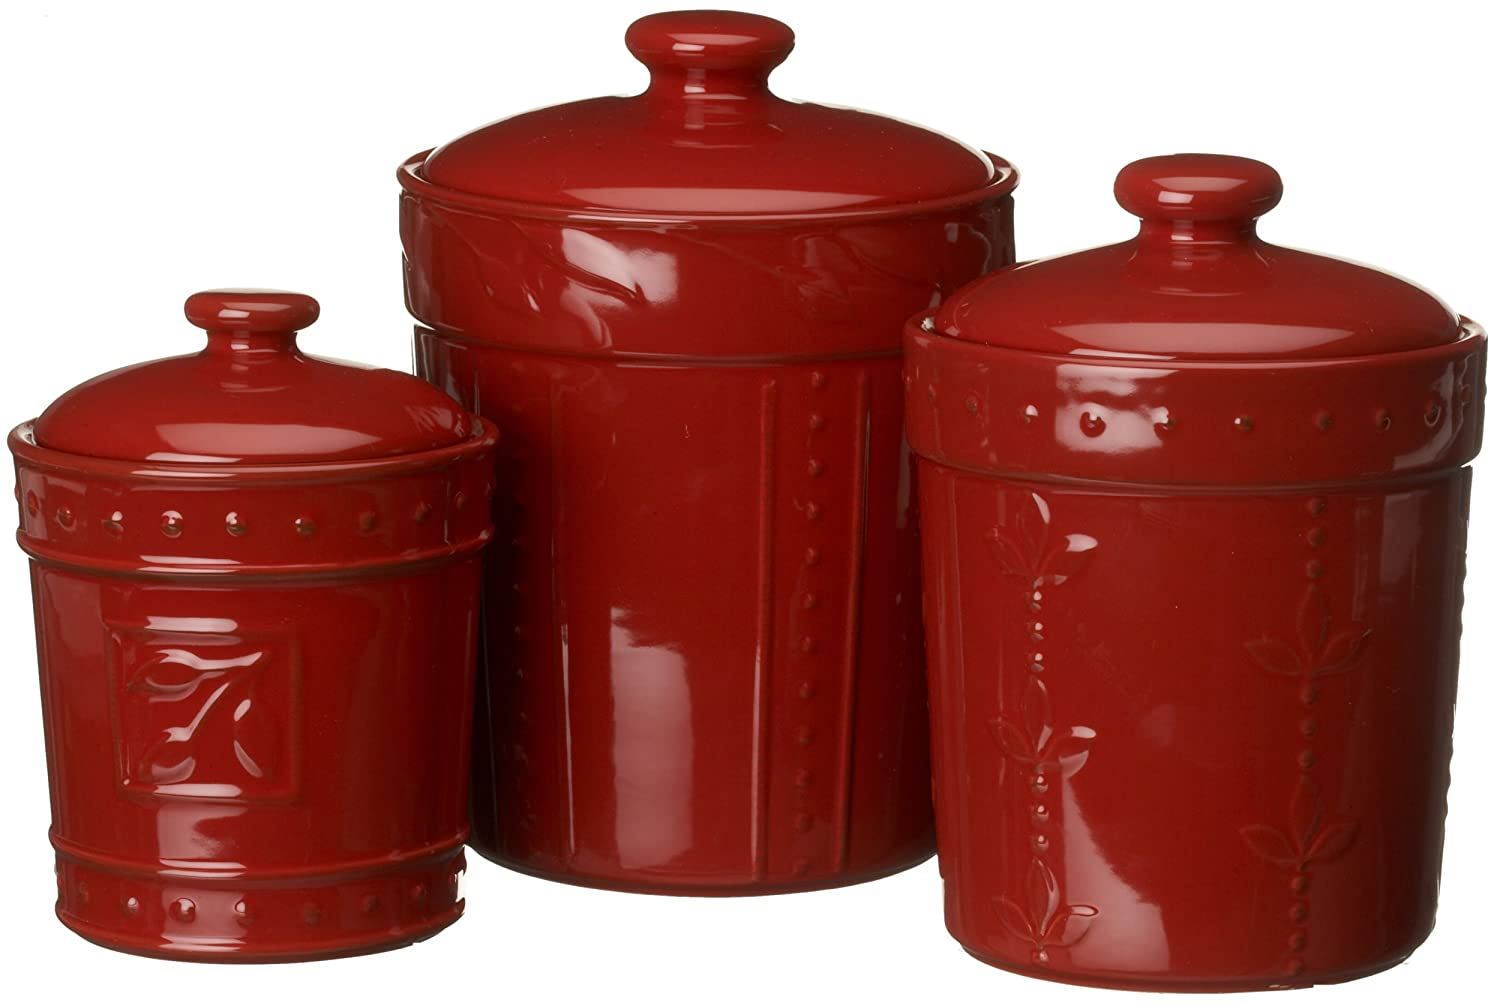 Red canisters set storage kitchen containers lids storage for Kitchen set red